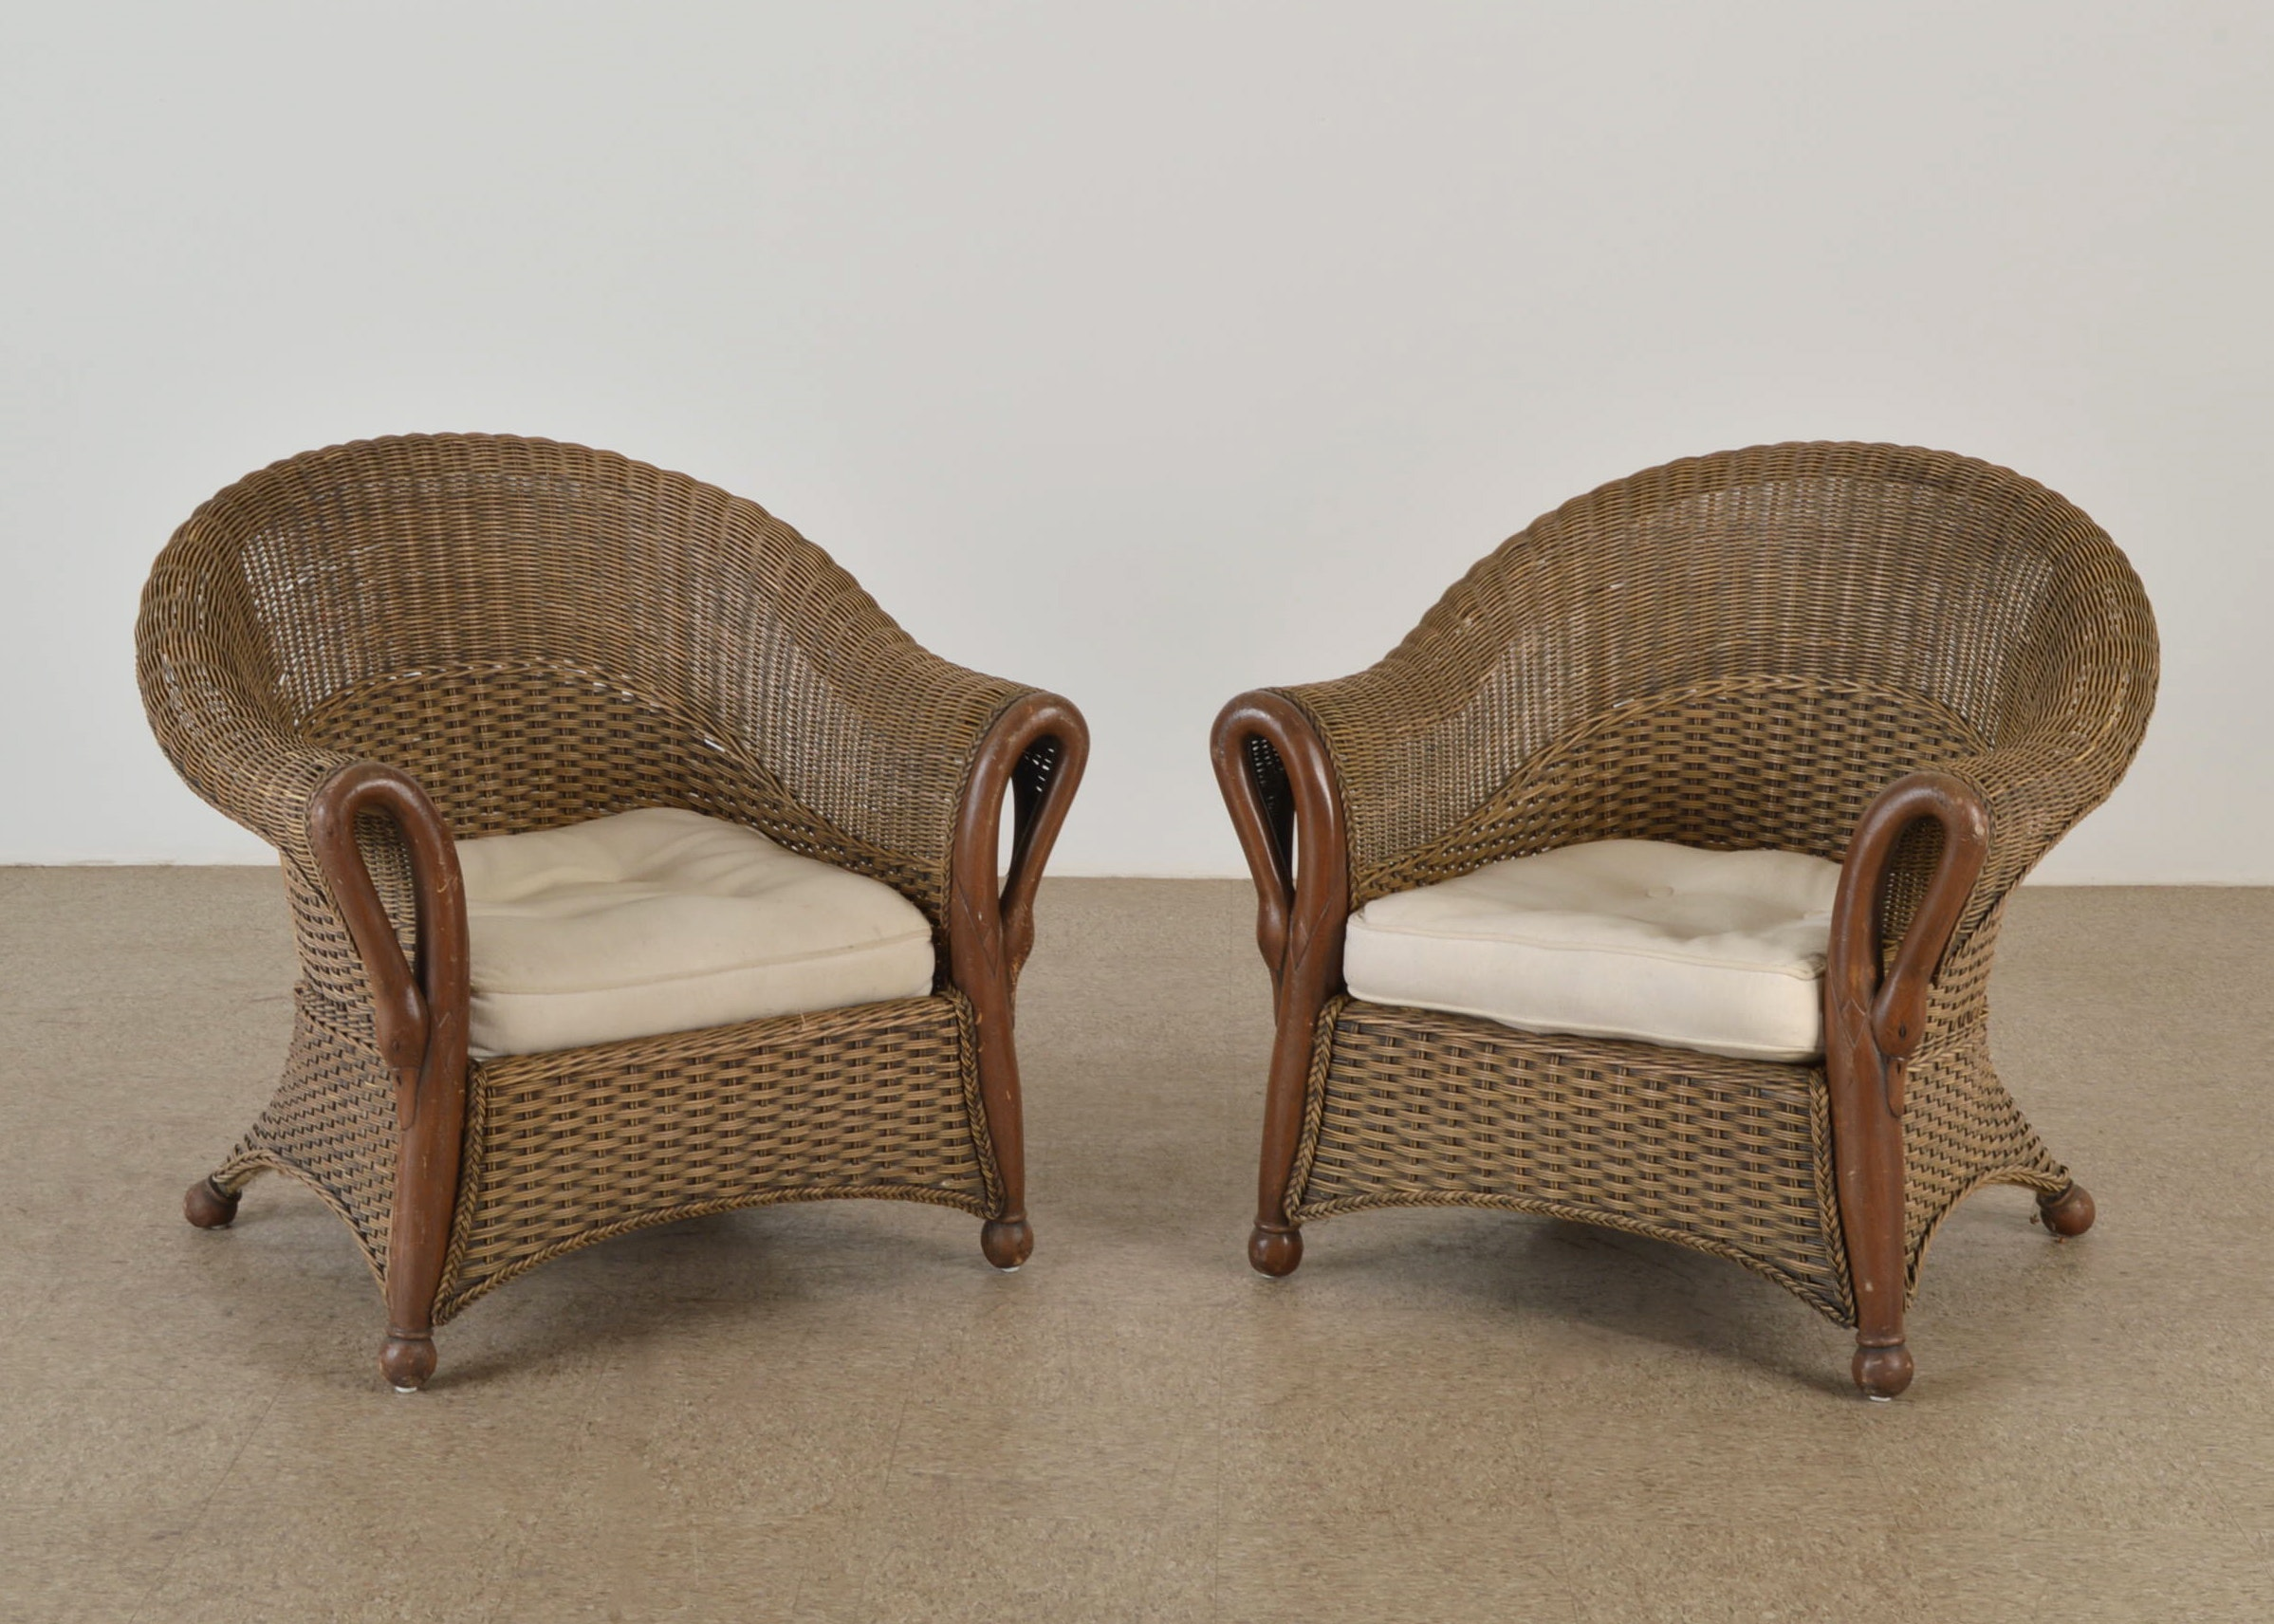 pair of swan neck wicker chairs